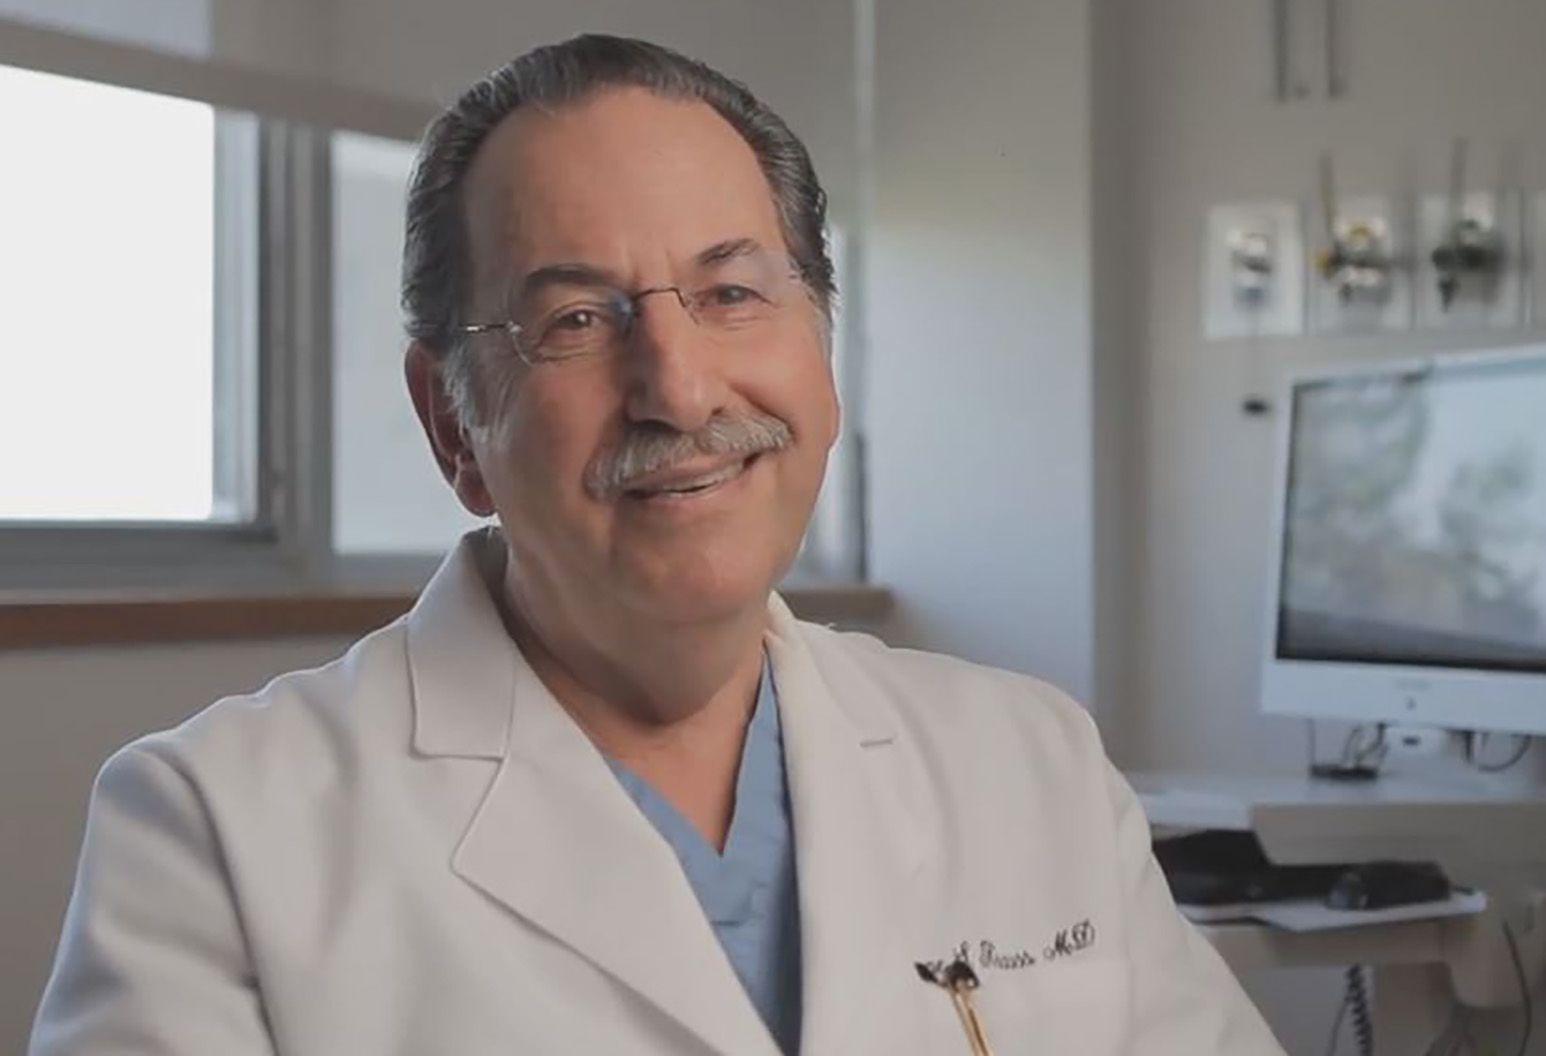 Dr. Euegene Krauss wears scrubs and a white lab coat and smiles at the camera. He has gray hair and a mustache and wears glasses without frames.